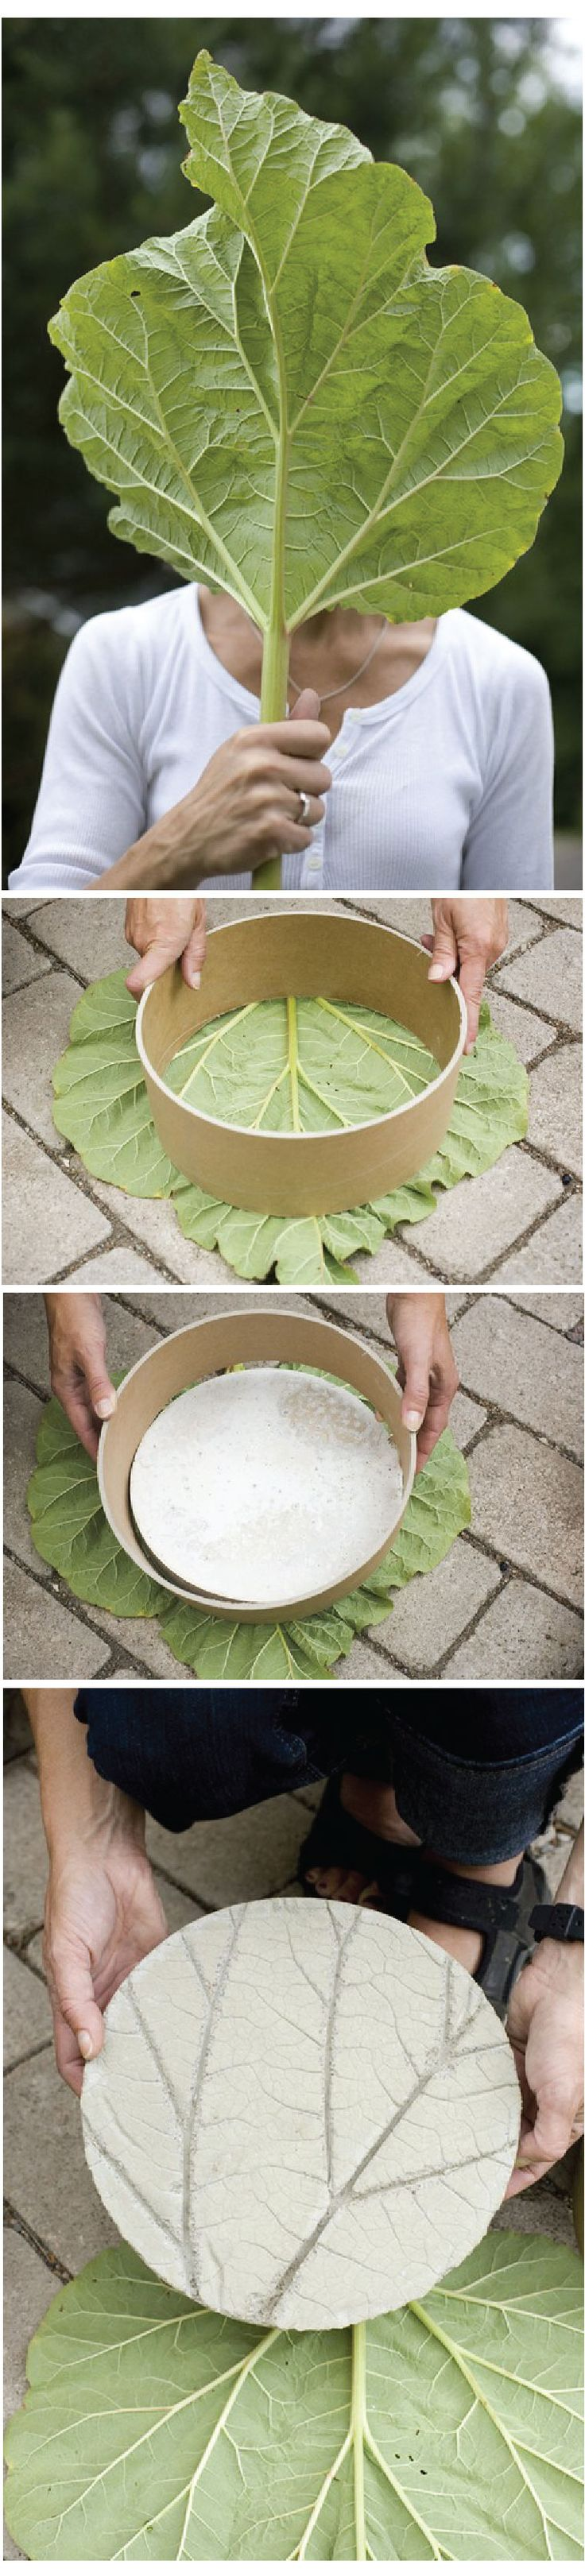 DIY- Leaf shaped Garden-Stones: Gardens Ideas, Diy Gardens, Gardens Stones, Leaf Prints, Stones Ideas, Leaf Step Stones, Diy Step, Stepping Stones, Gardens Step Stones